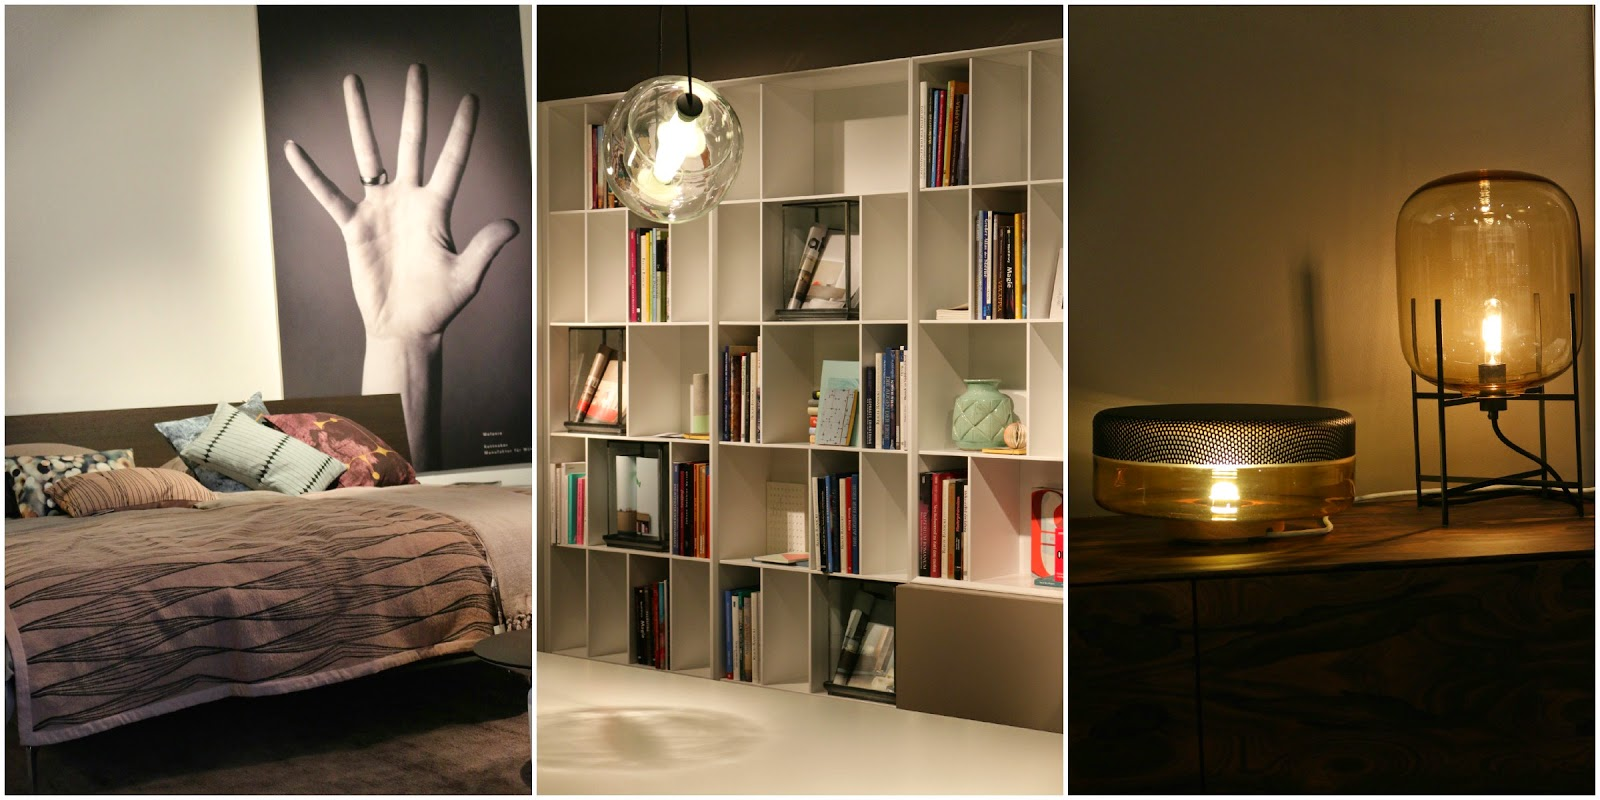 imm cologne ich war bei der blogst lounge dabei volle lotte. Black Bedroom Furniture Sets. Home Design Ideas